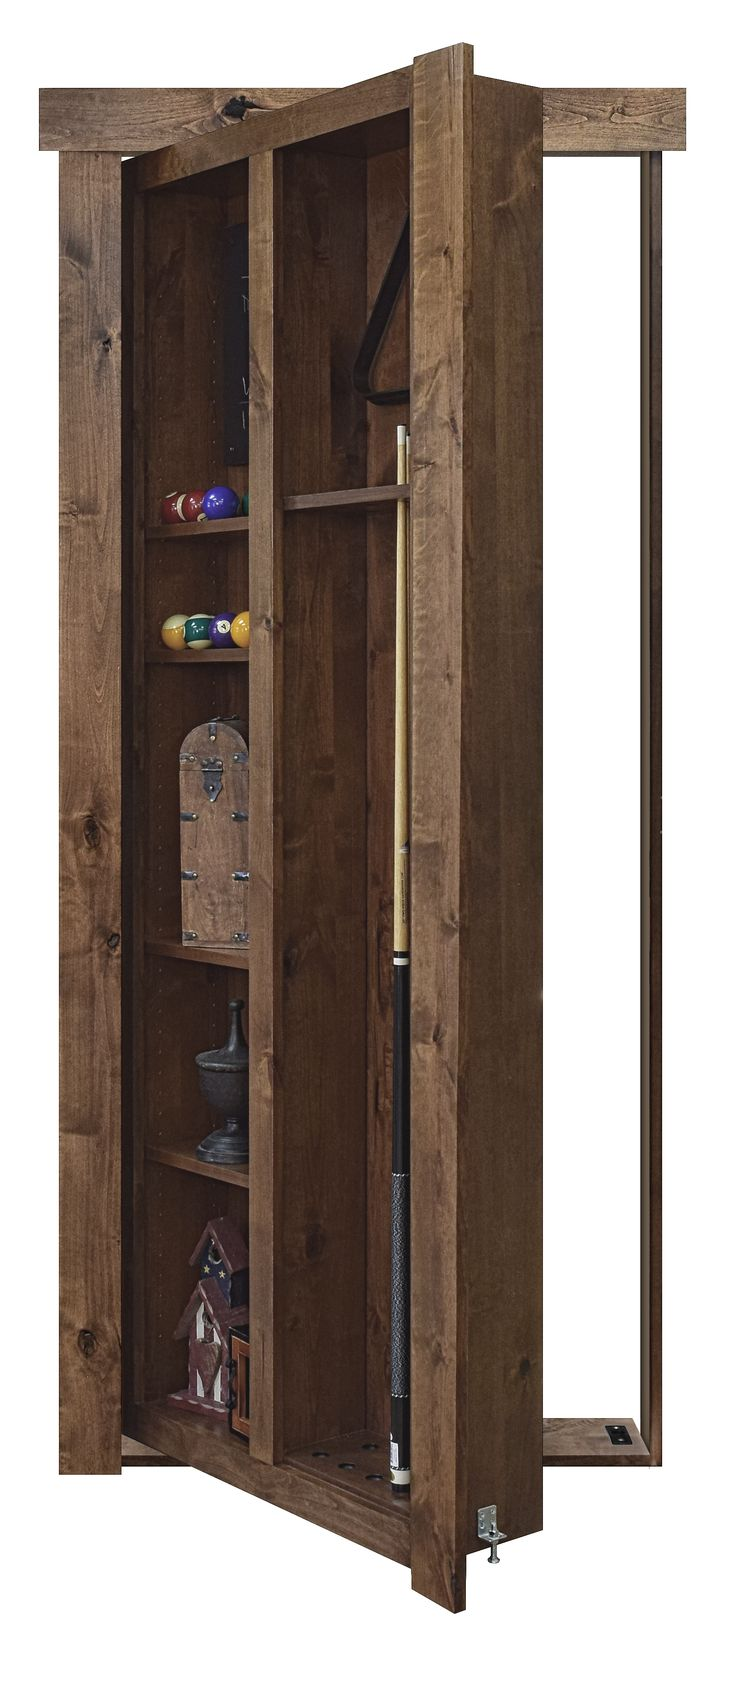 14 best murphy doors home solutions images on pinterest book murphy doors pool cue door part of the new murphy door home solutions available rubansaba